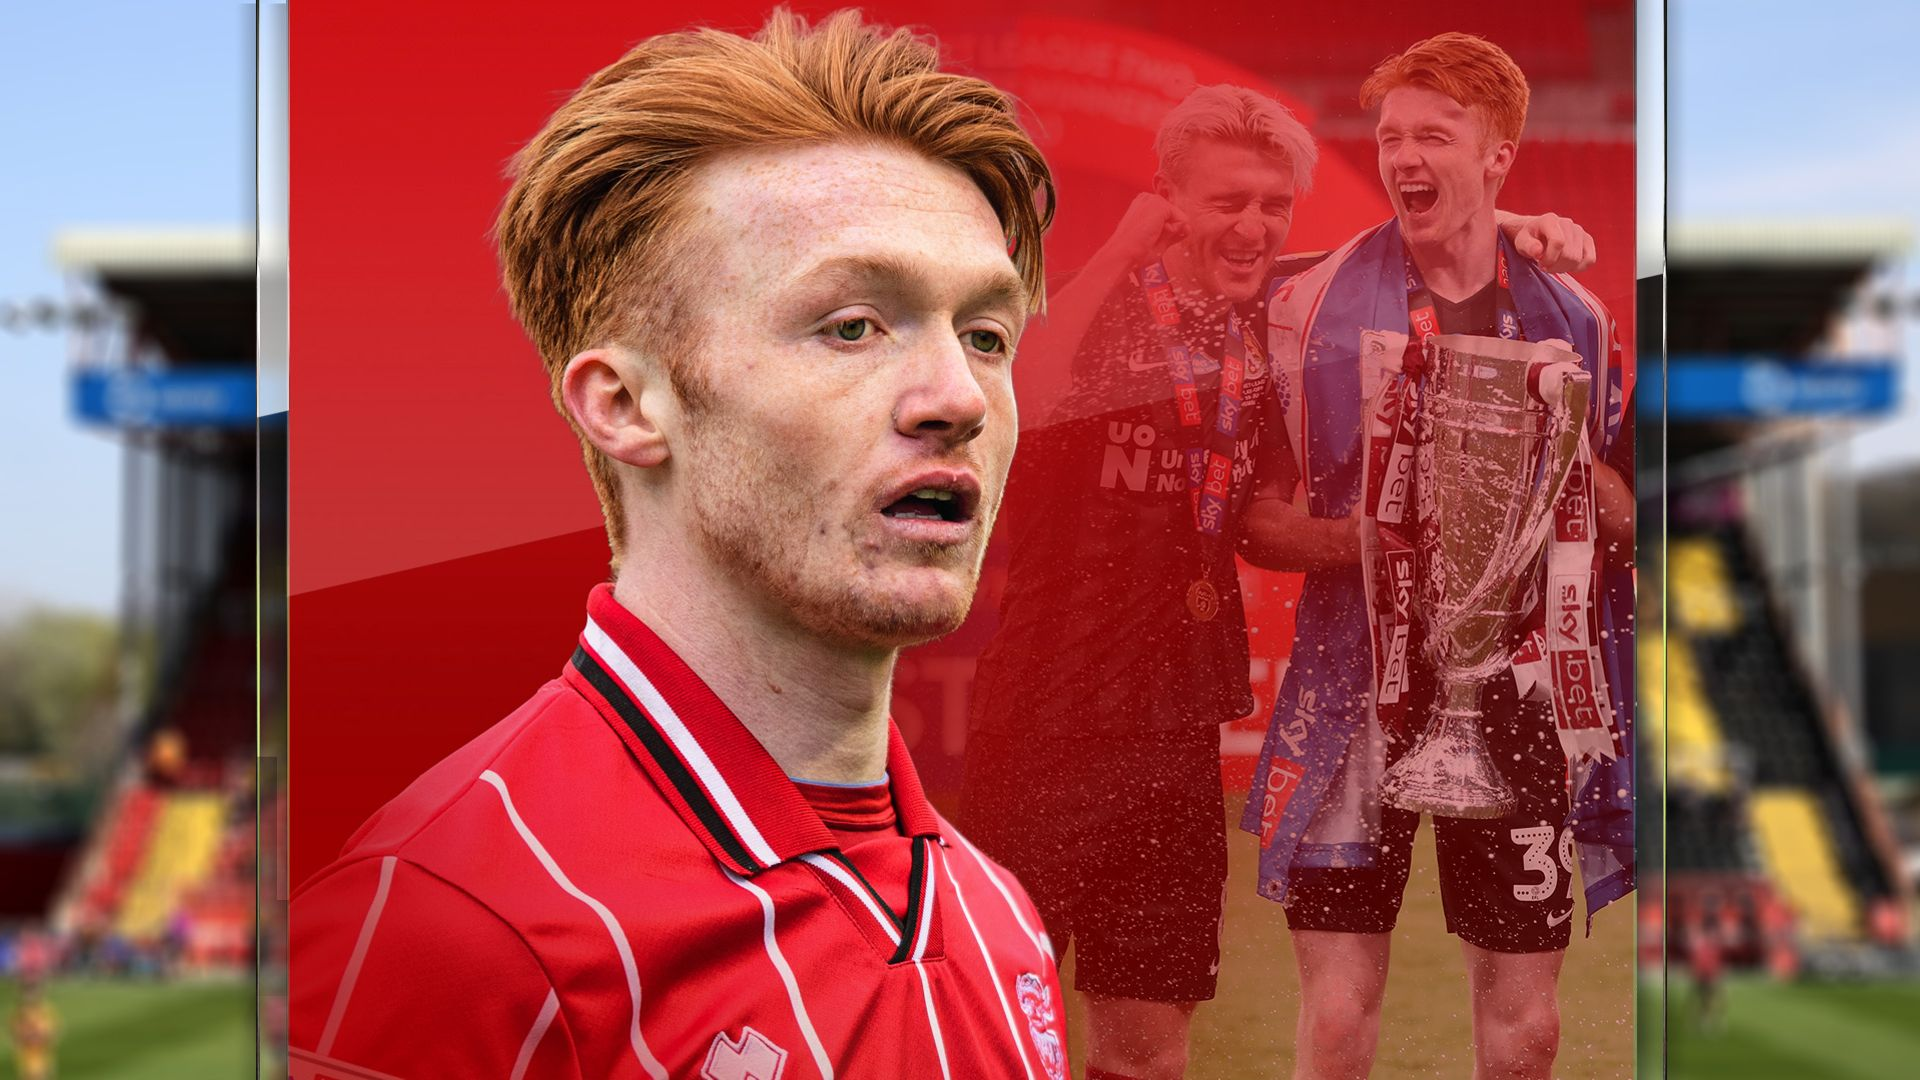 Morton: The play-off hero hoping for more Wembley glory